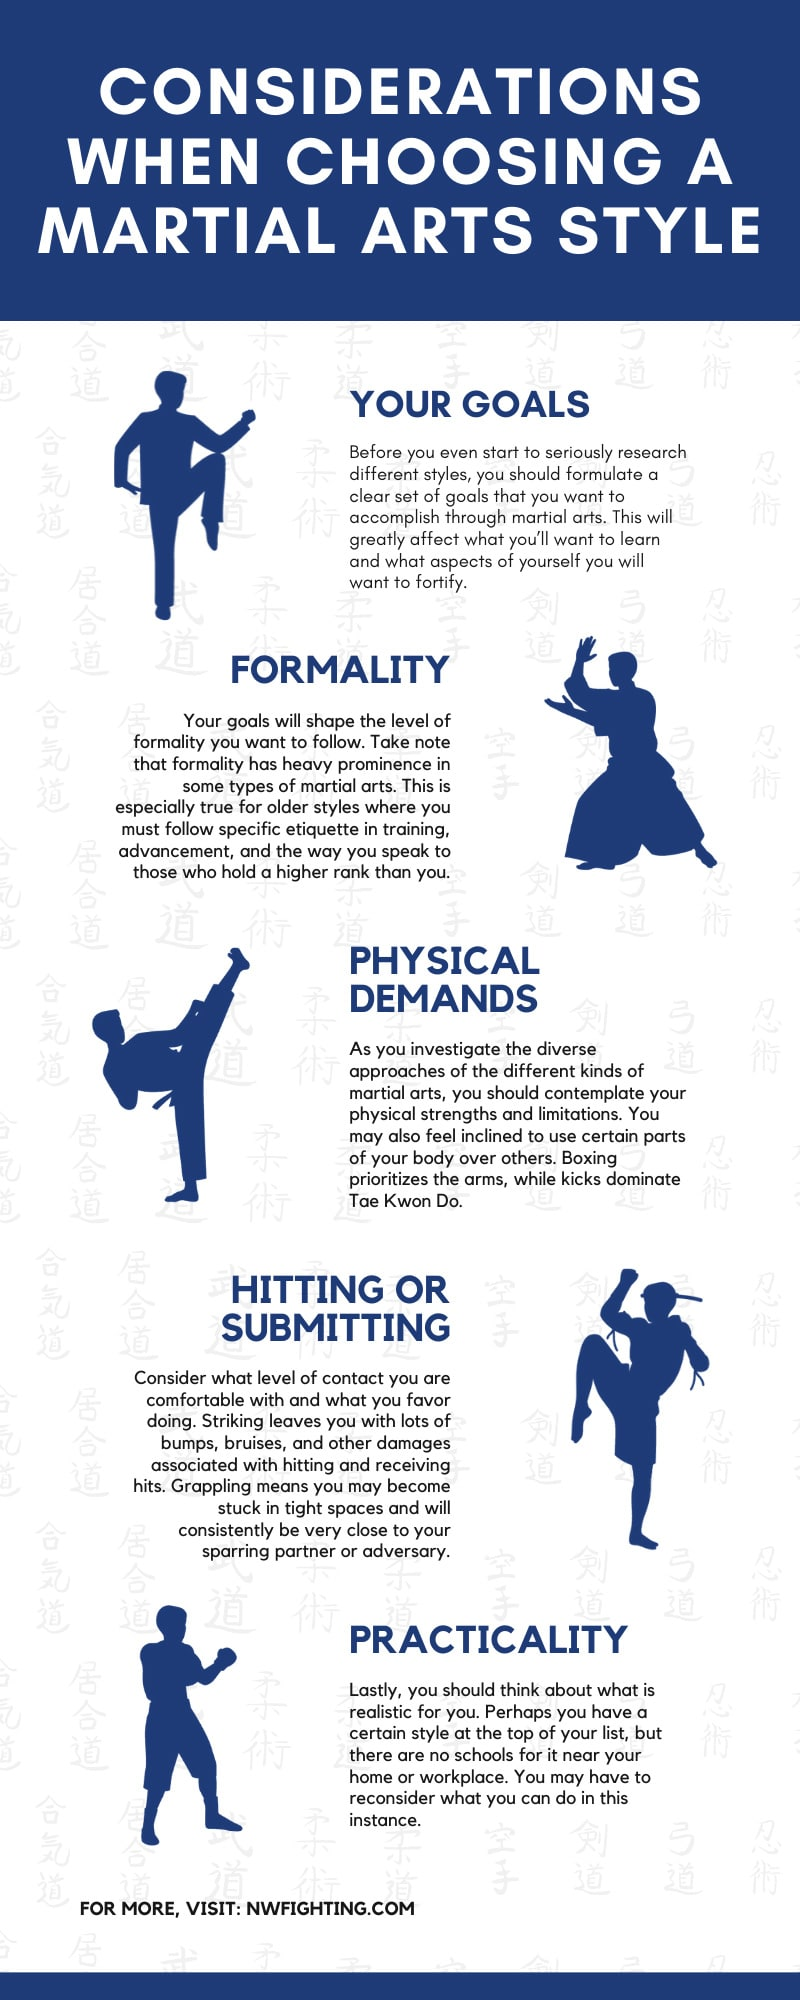 Considerations When Choosing a Martial Arts Style infographic